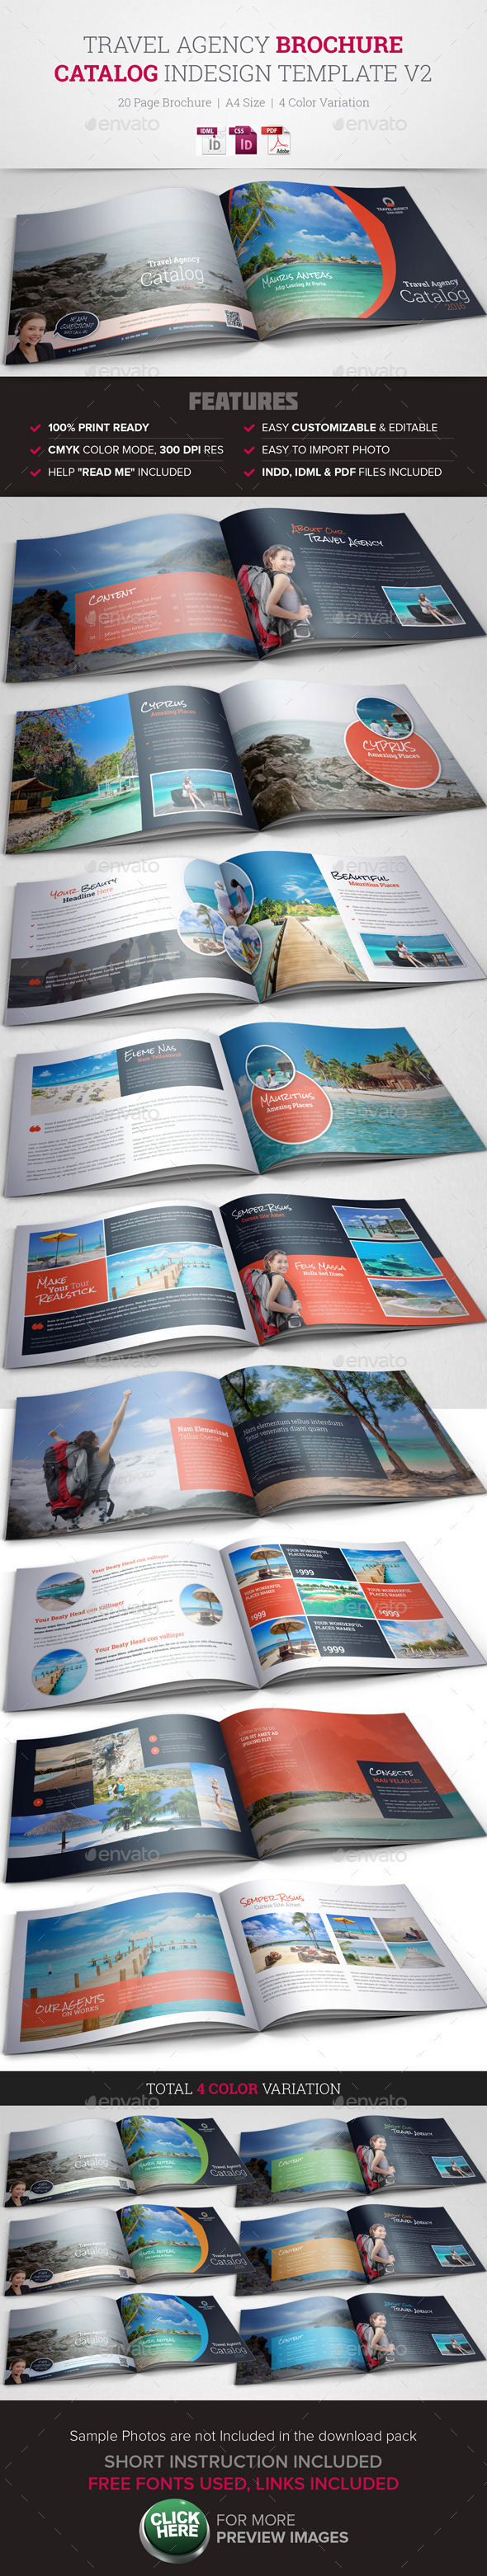 GraphicRiver Travel Agency Brochure Catalog InDesign 2 10511731